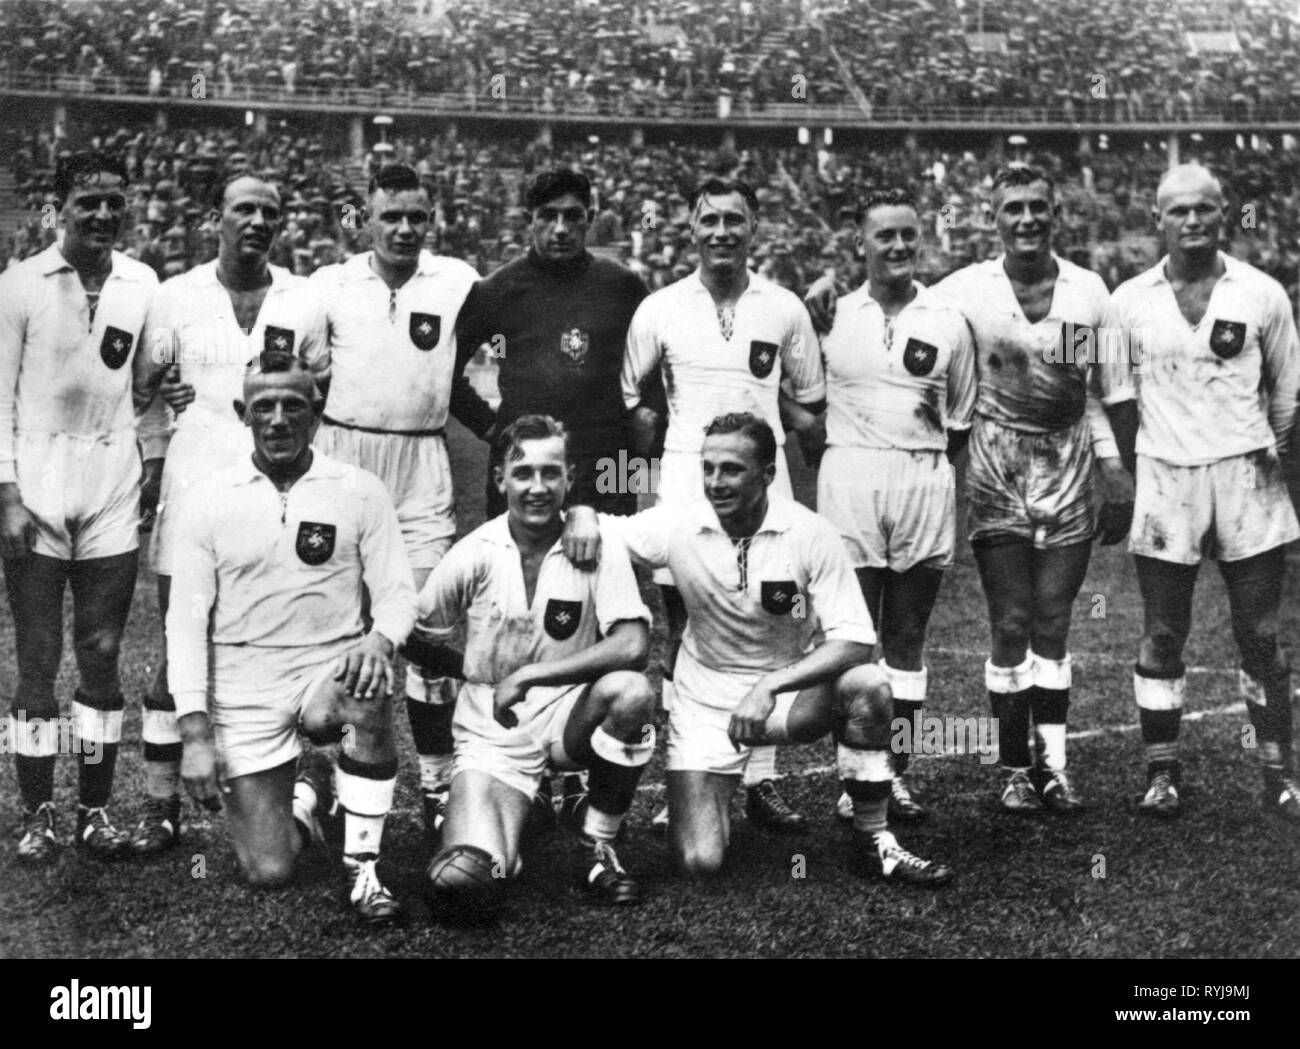 sports, Olympic Games, Berlin 1936, handball, German team after victory against Austria in the final, Additional-Rights-Clearance-Info-Not-Available - Stock Image